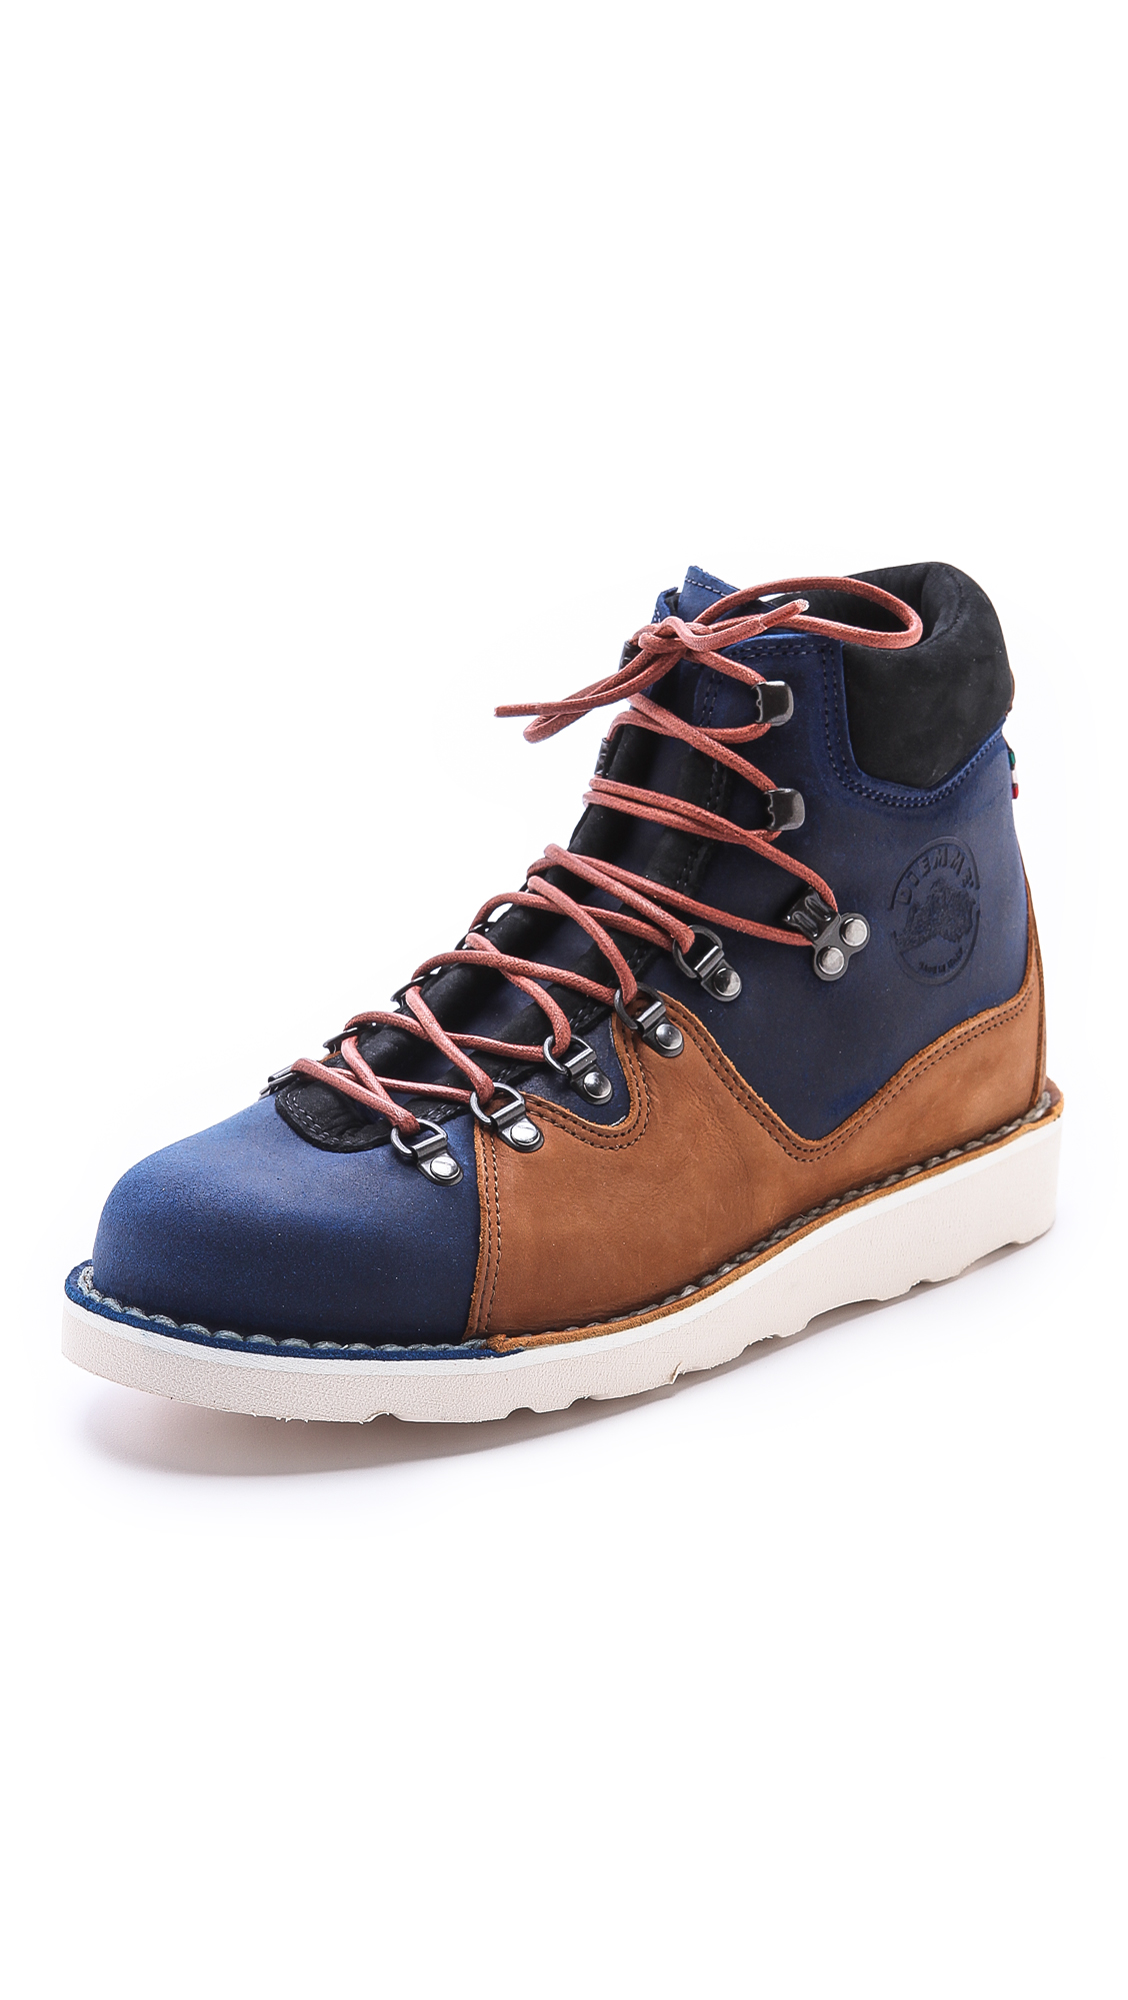 diemme roccia due hiking boots in brown for gulf lyst